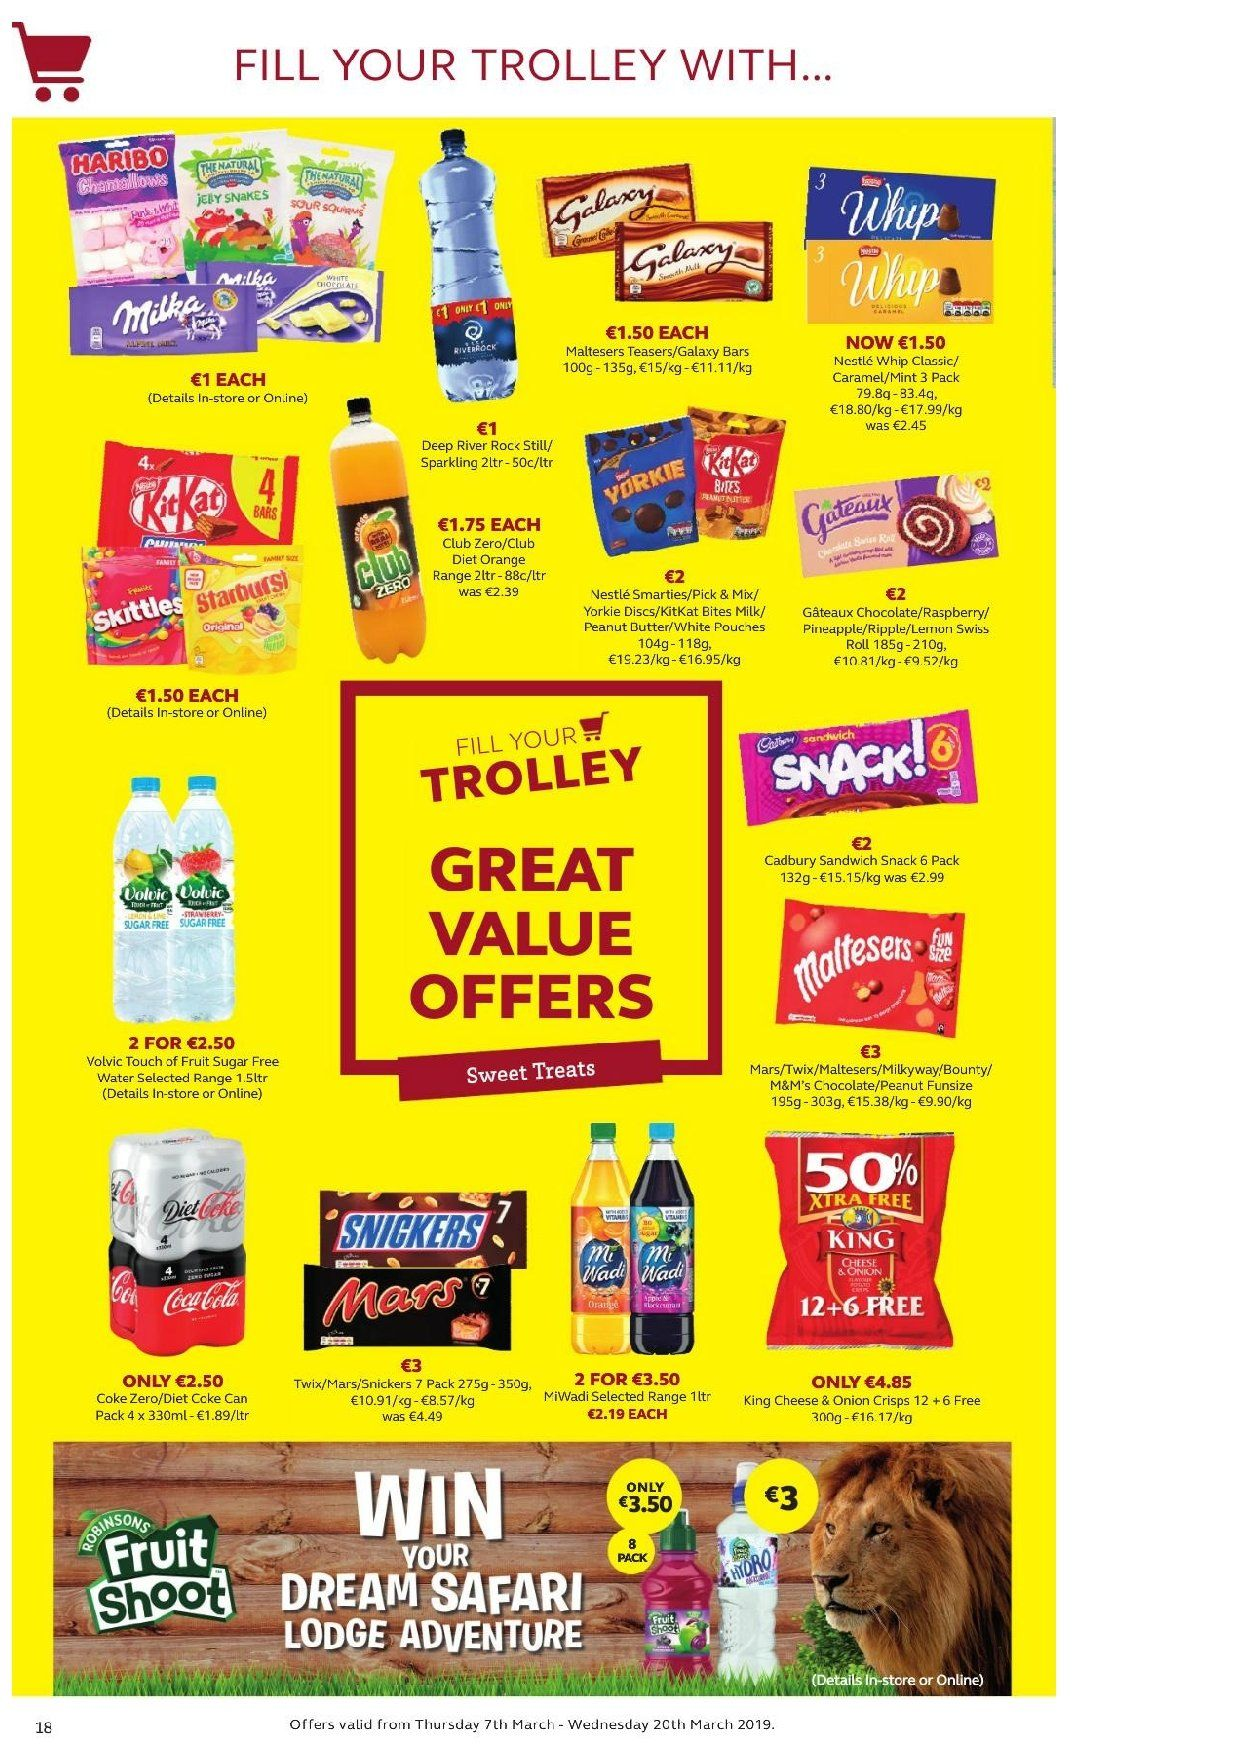 SuperValu offer  - 7.3.2019 - 20.3.2019 - Sales products - Great Value, swiss roll, pineapple, orange, sandwich, milk, Nestlé, chocolate, Snickers, Twix, Bounty, Mars, M&M's, Smarties, KitKat, Maltesers, Cadbury, snack, caramel, peanut butter, Coca-Cola, Coca-Cola zero, club diet, club zero, Volvic, trolley, Samsung Galaxy. Page 17.